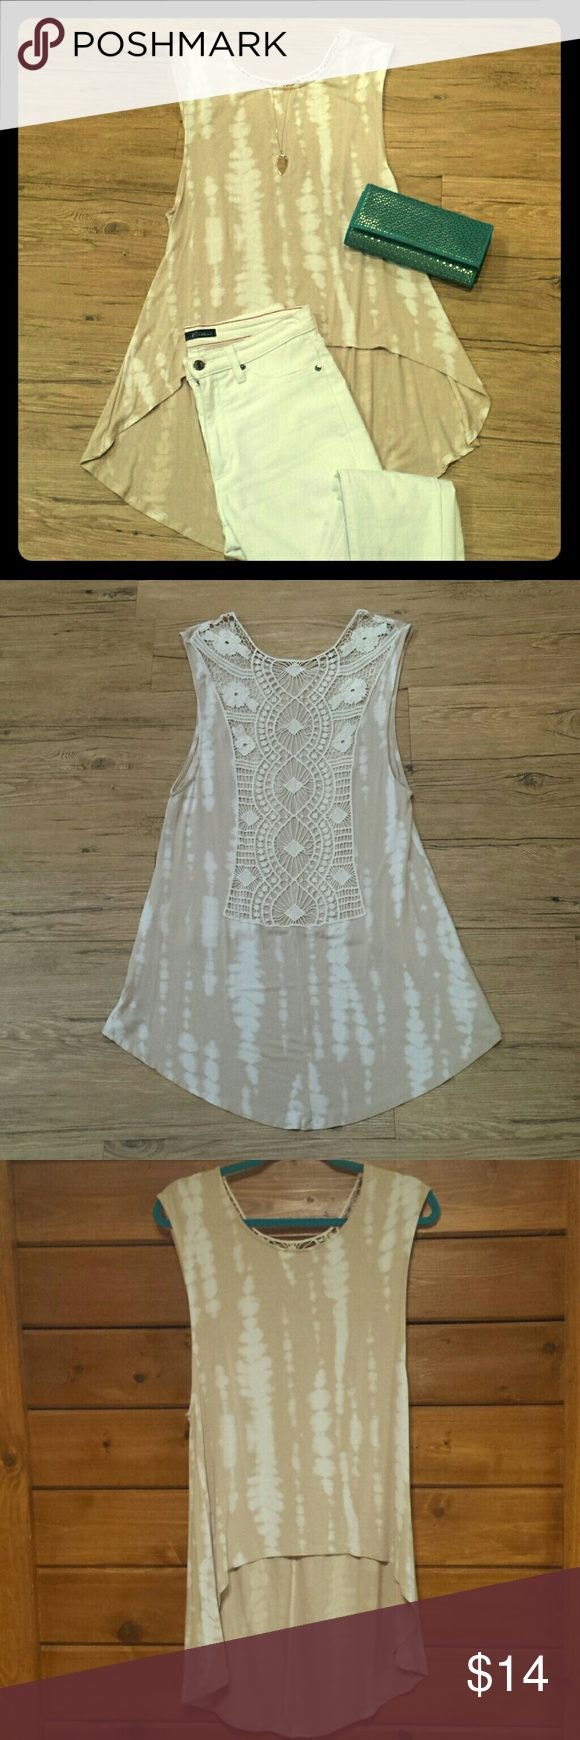 Tie dye hi/lo tunic Beige hi/lo tunic with lace detail on the back. The lace is cut out and this top requires a cami or bralette. Great paired with white skinnies! Tops Tunics